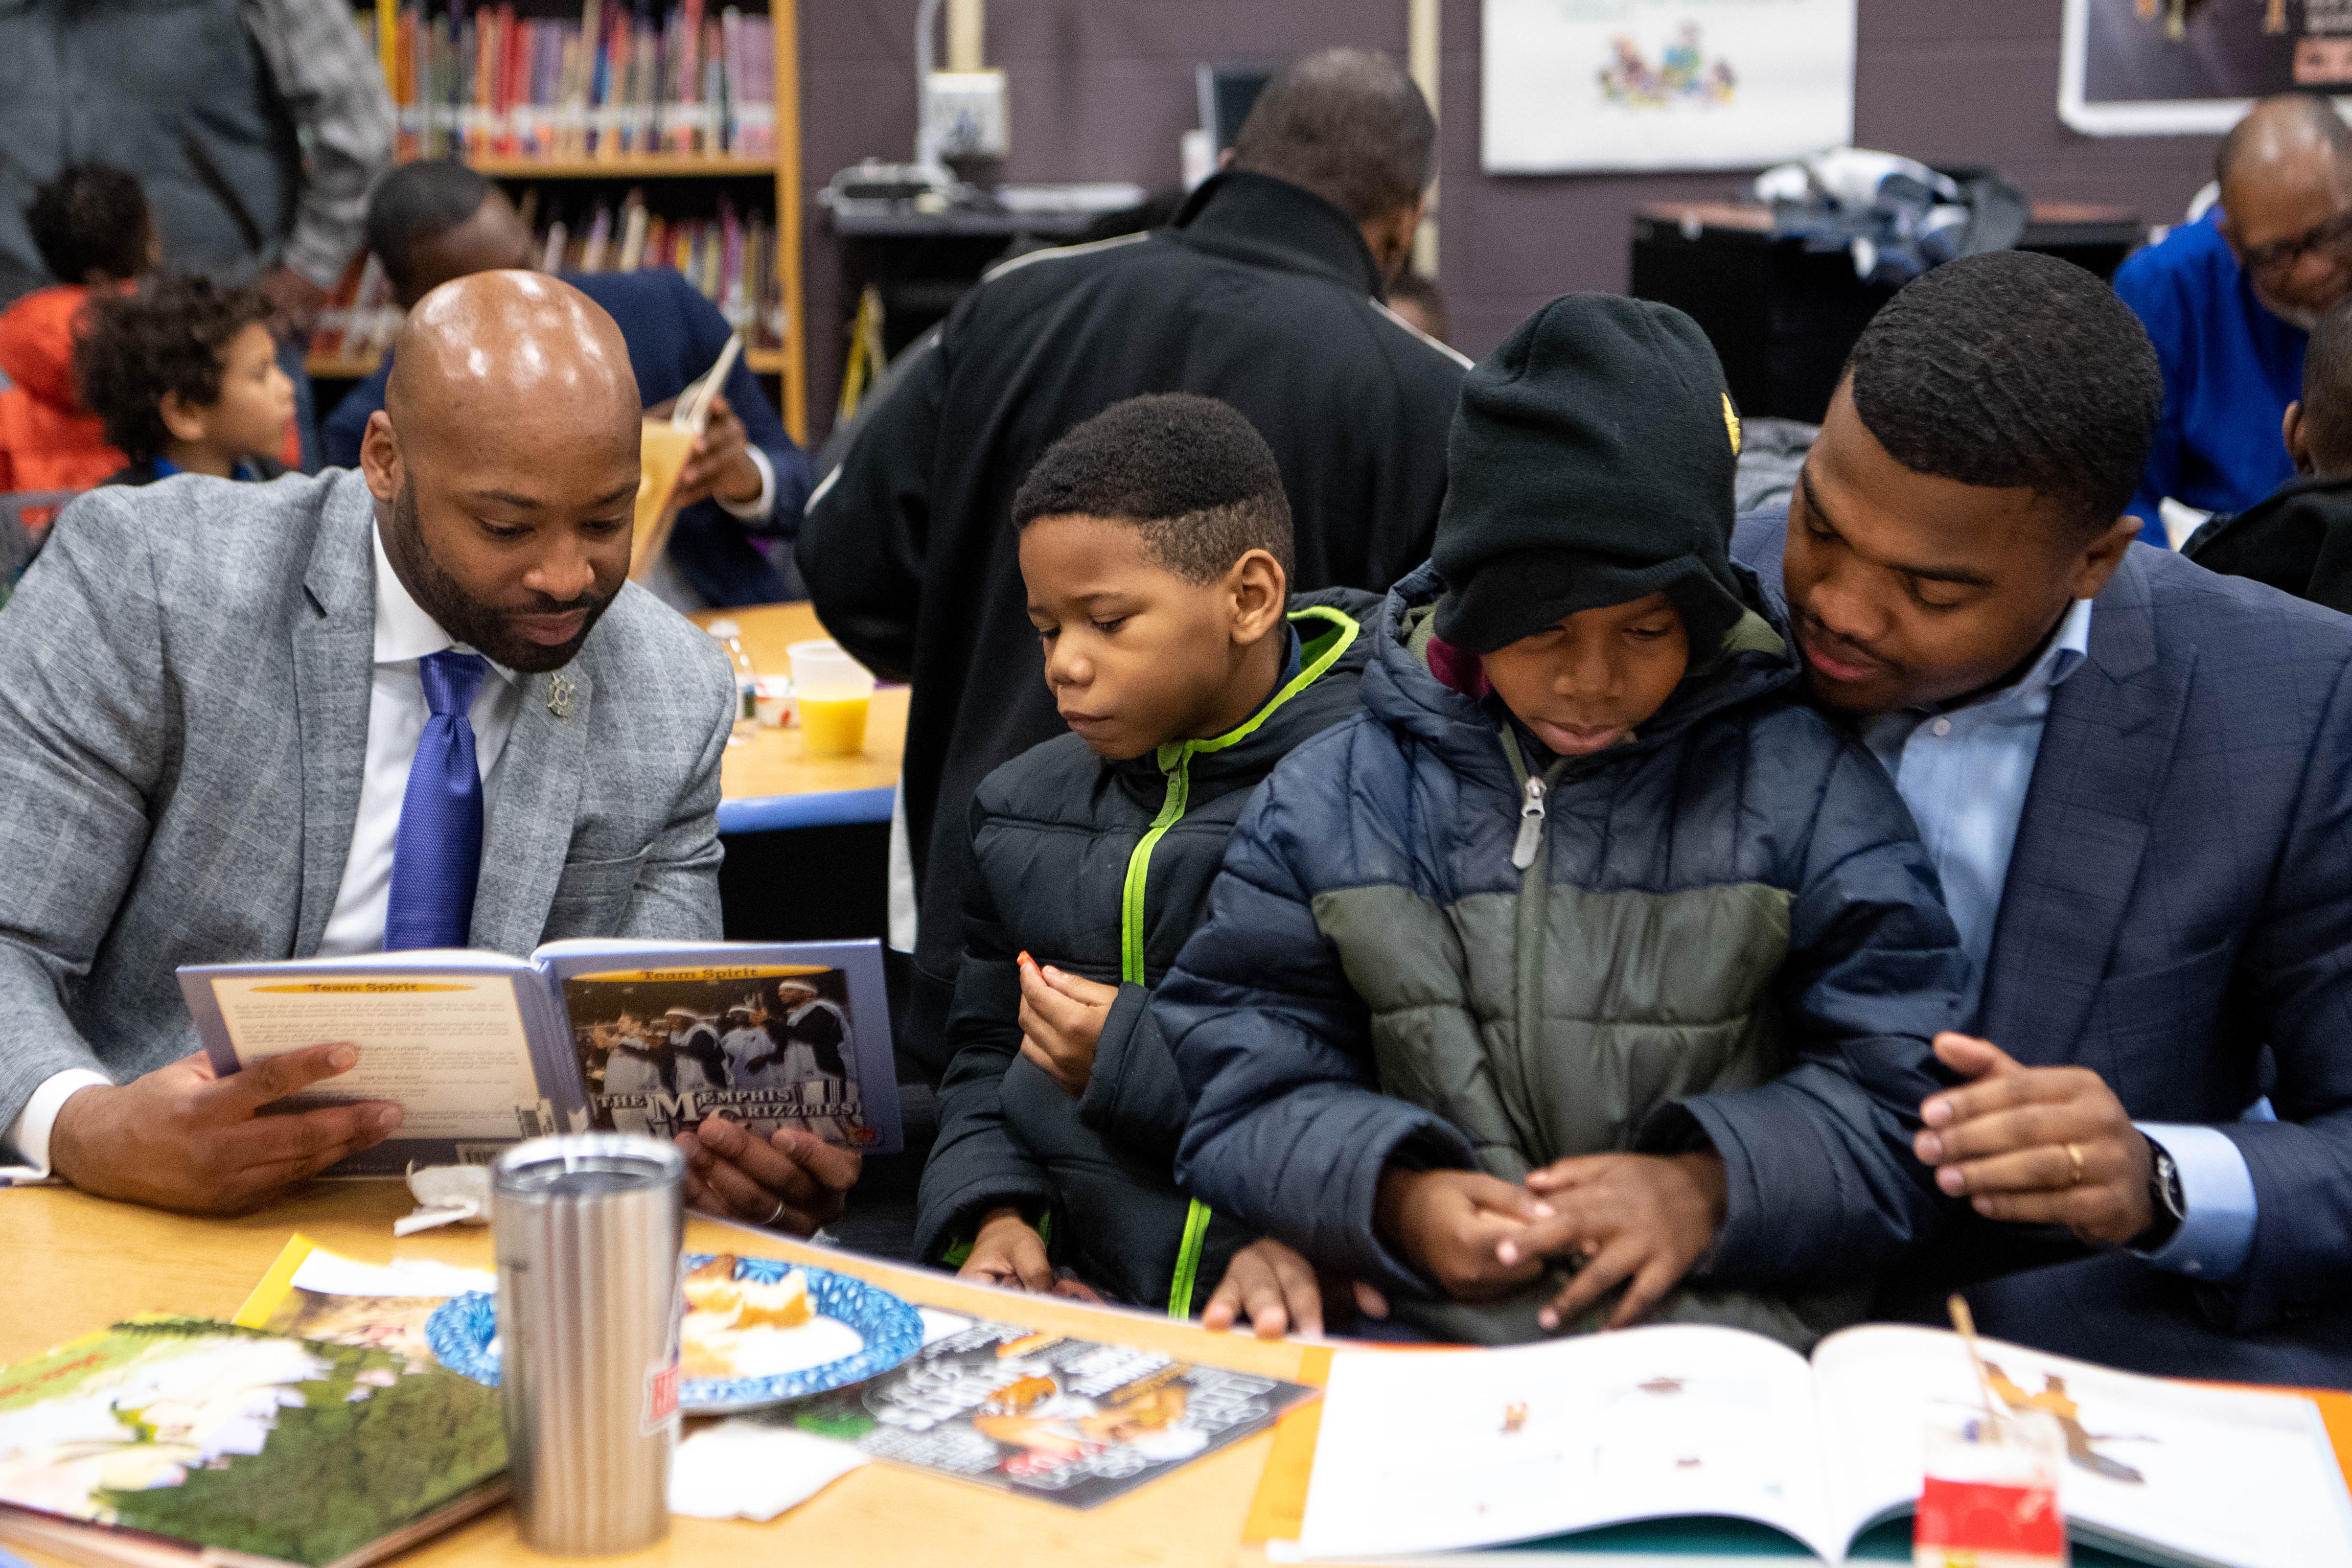 Xavier Purdy, from left, Tyrell Kirkwood, Tykese Kirkwood-Welch and Dameion Cowans read together during Fatherhood Friday at Buena Vista Elementary on Dec. 13, 2019, in Nashville, Tenn.